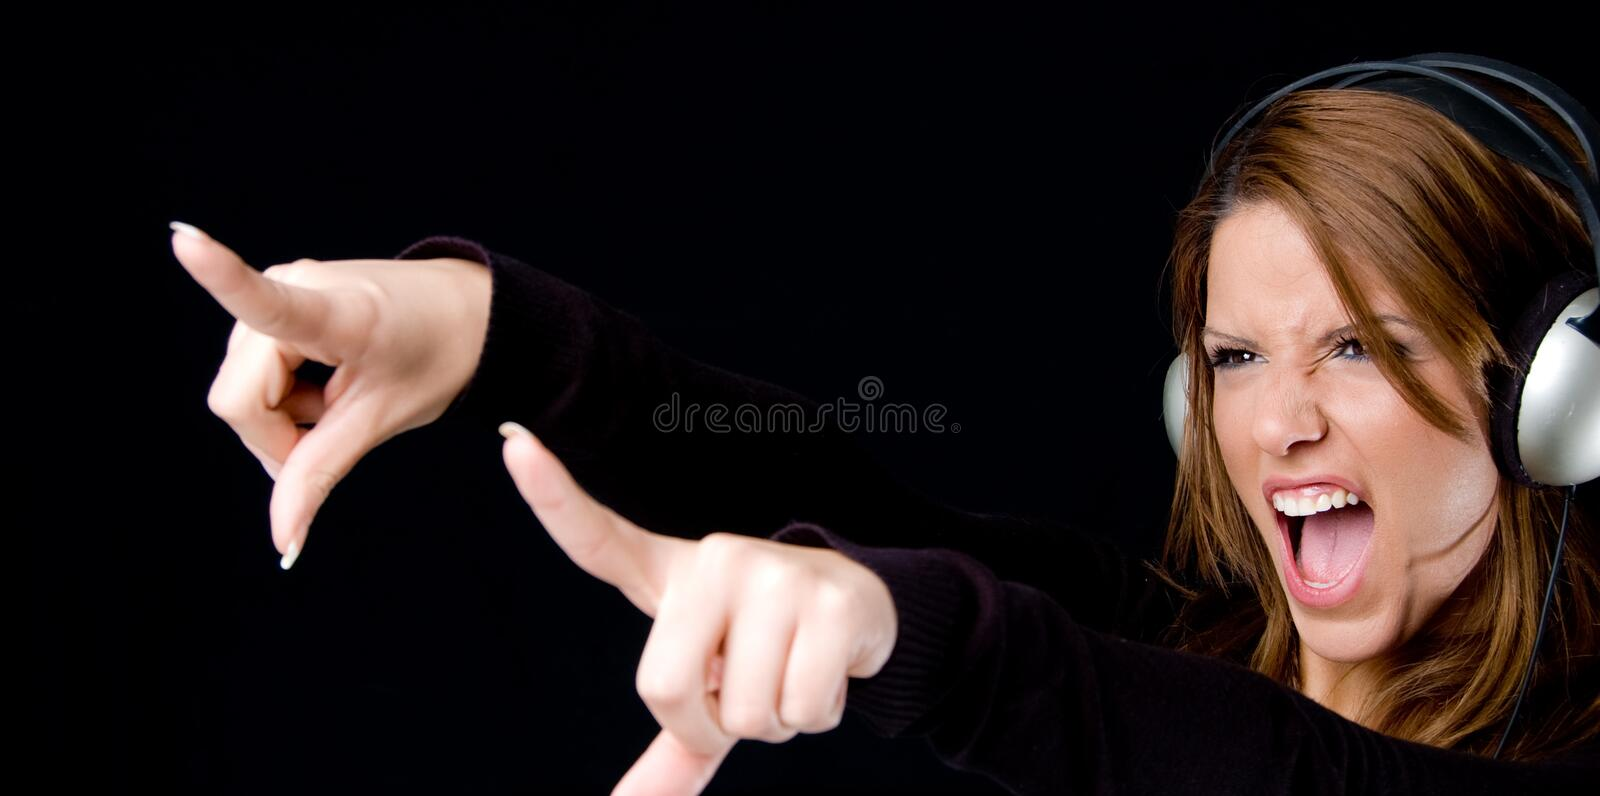 Download Portrait Of Young Female Enjoying Music Stock Photo - Image: 9743494